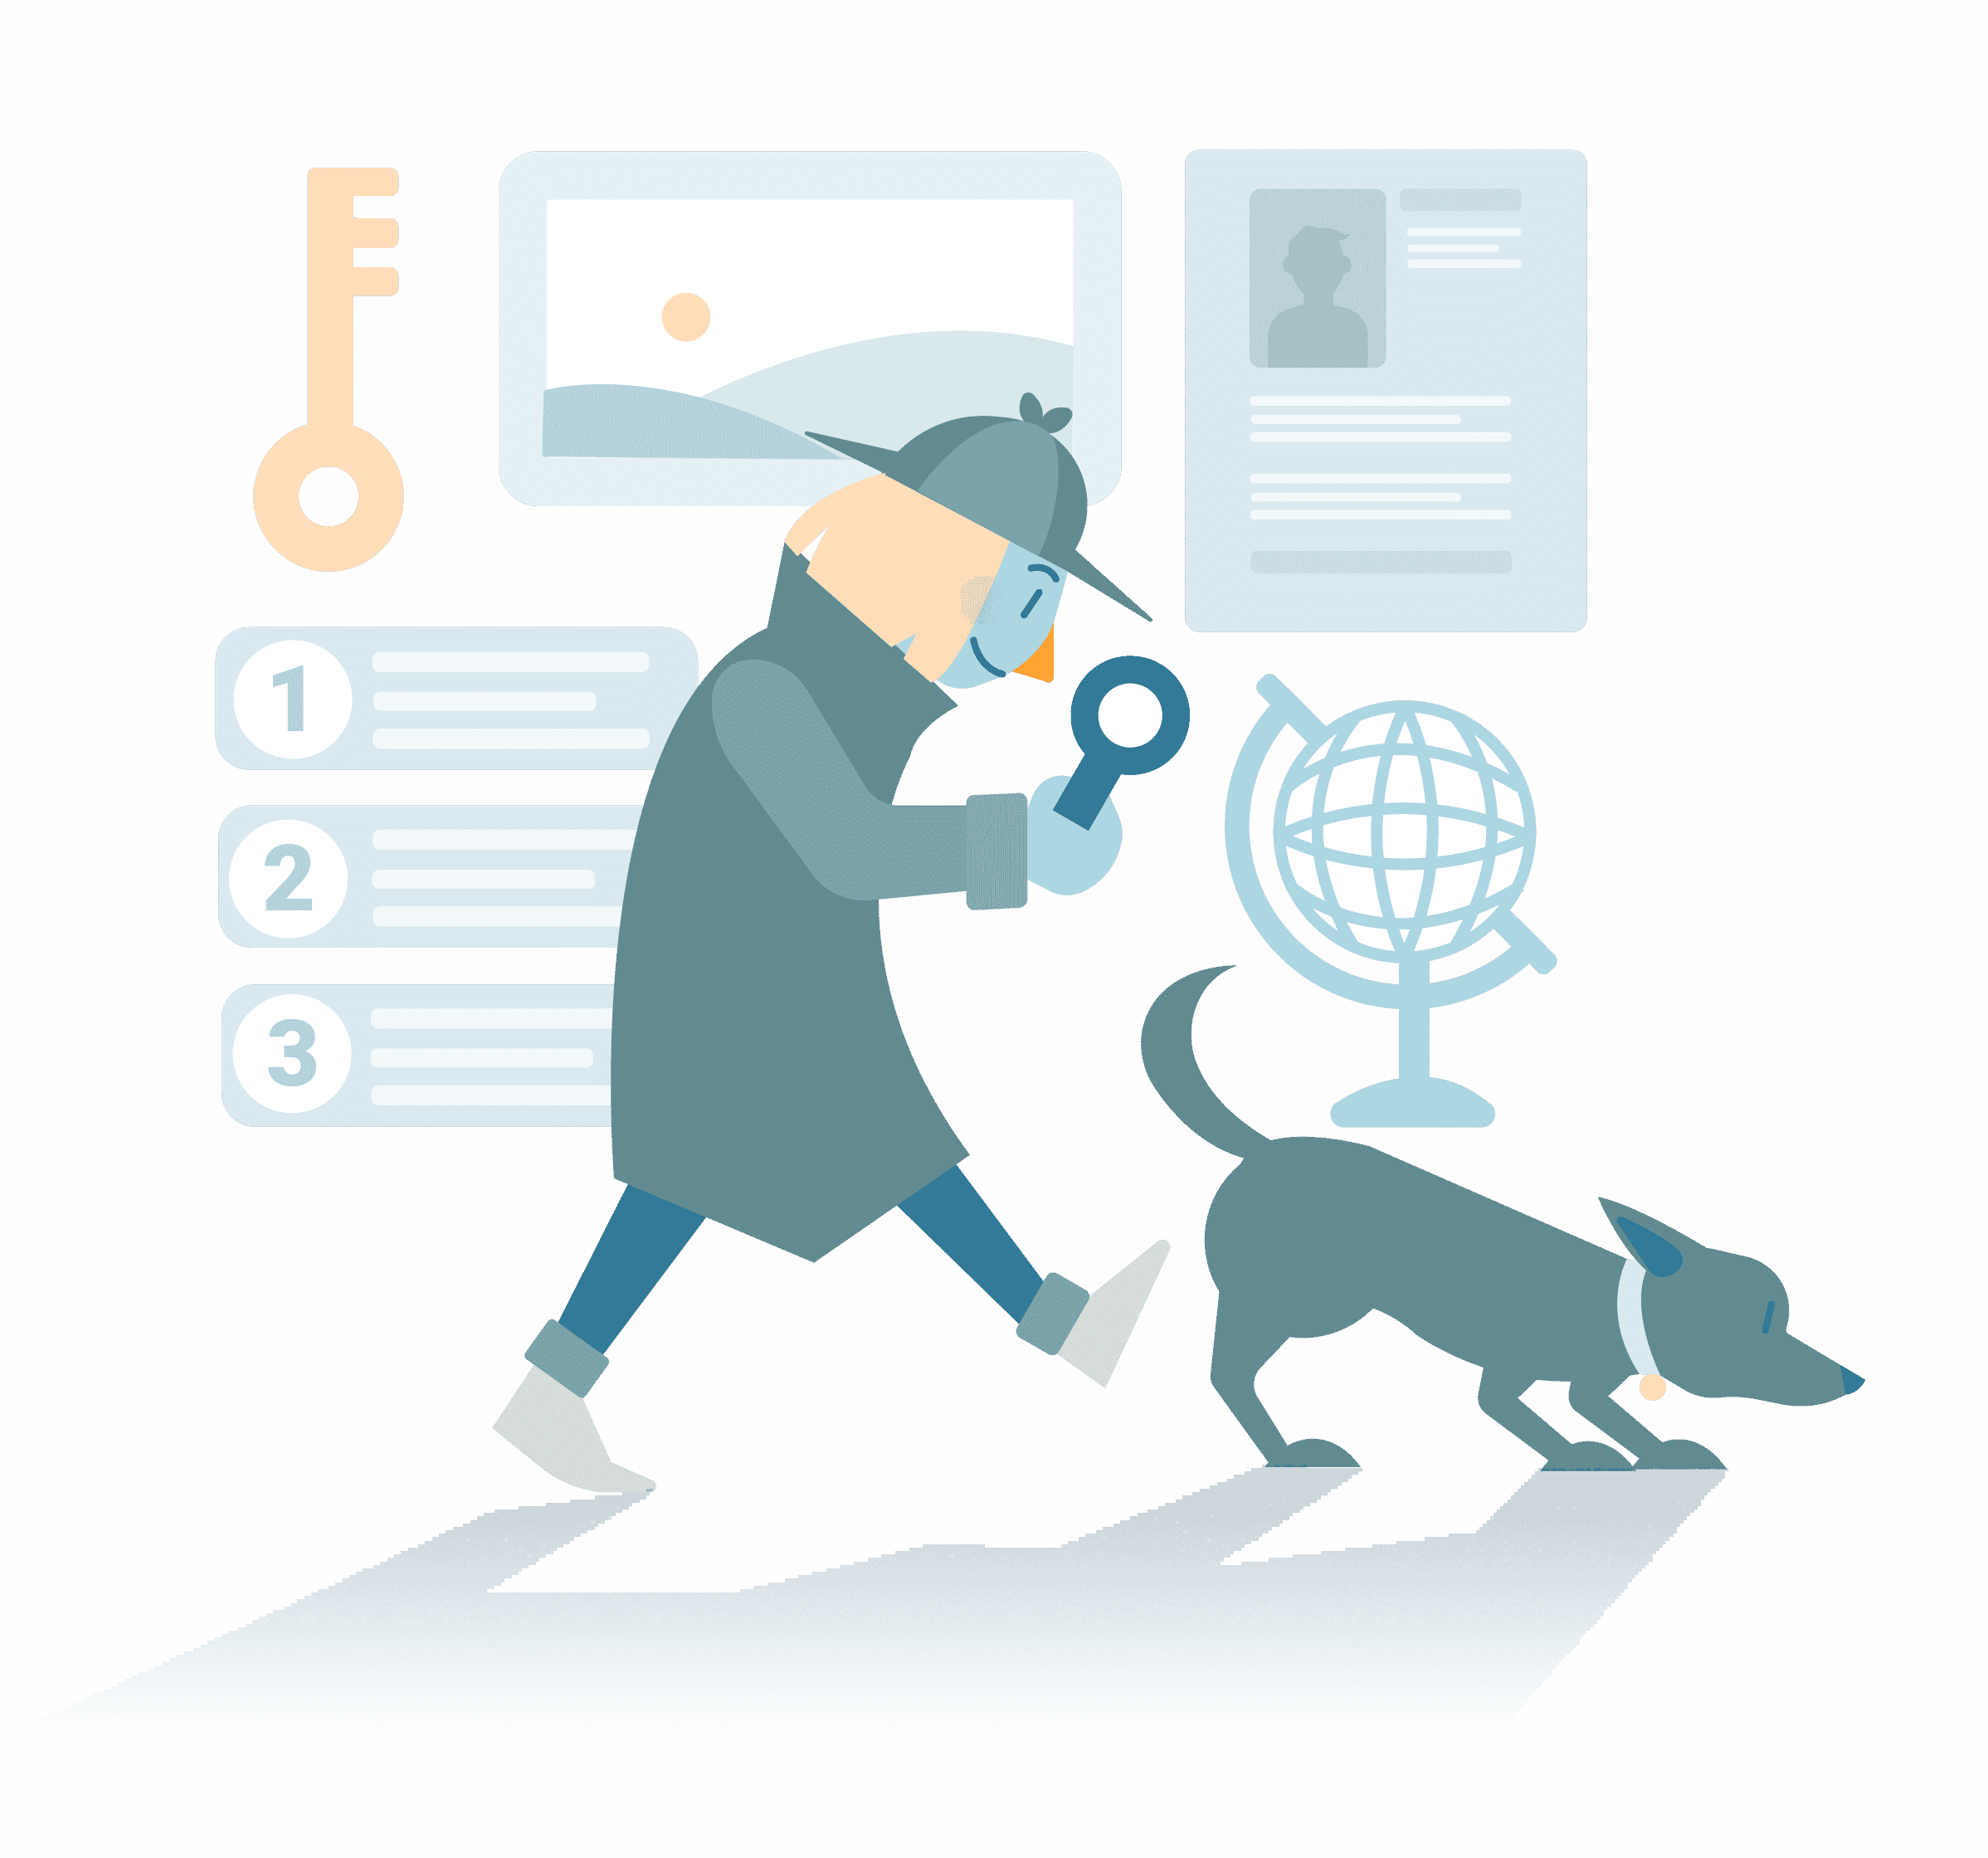 SEO agency services dashboard illustration